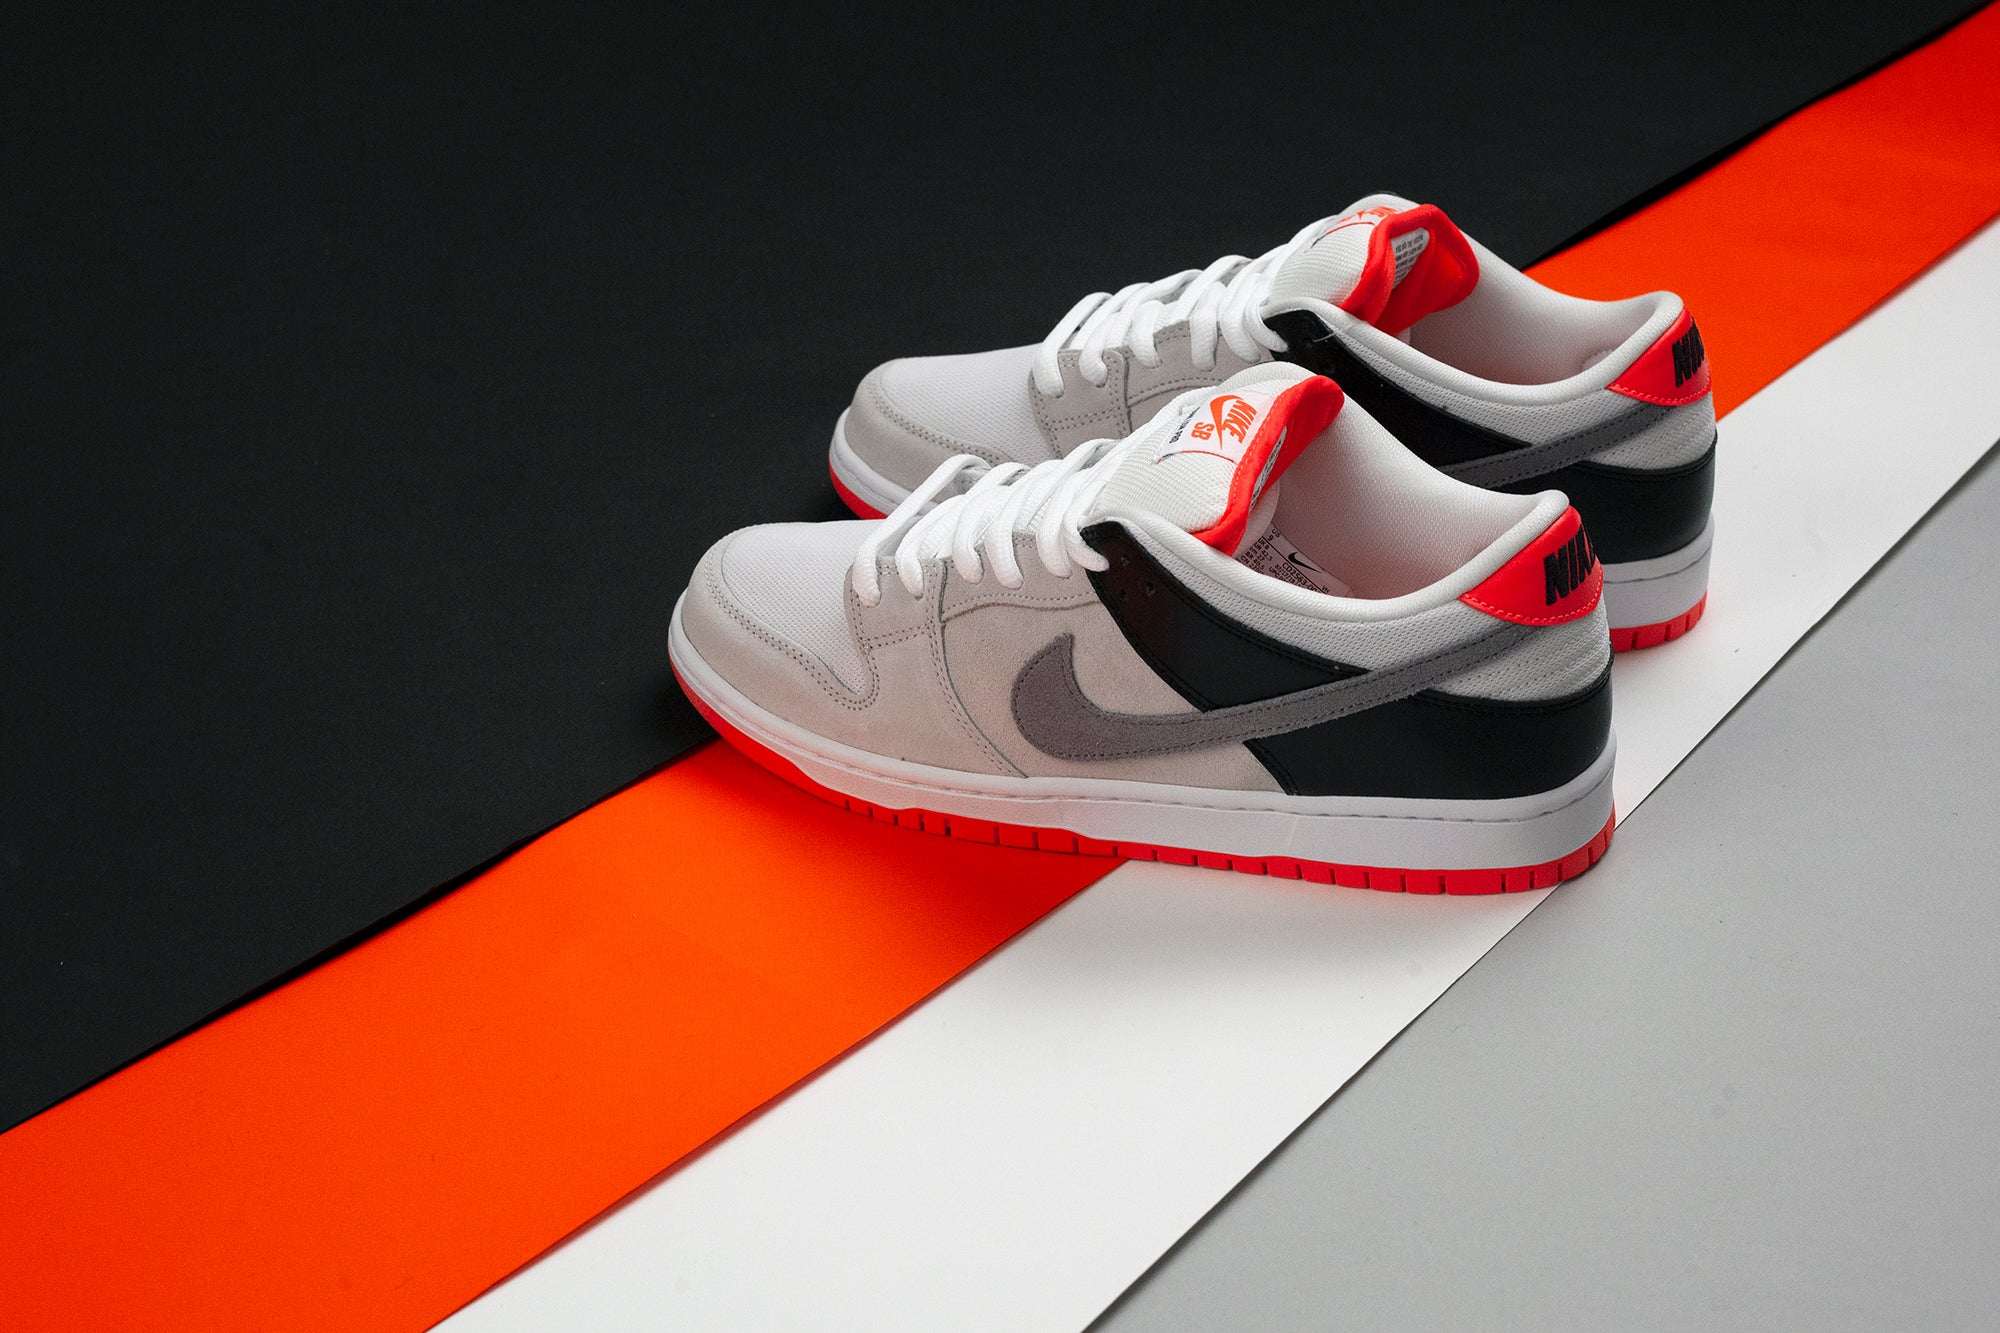 Nike_SB_Dunk_Low_Infared_Orange_Label_4